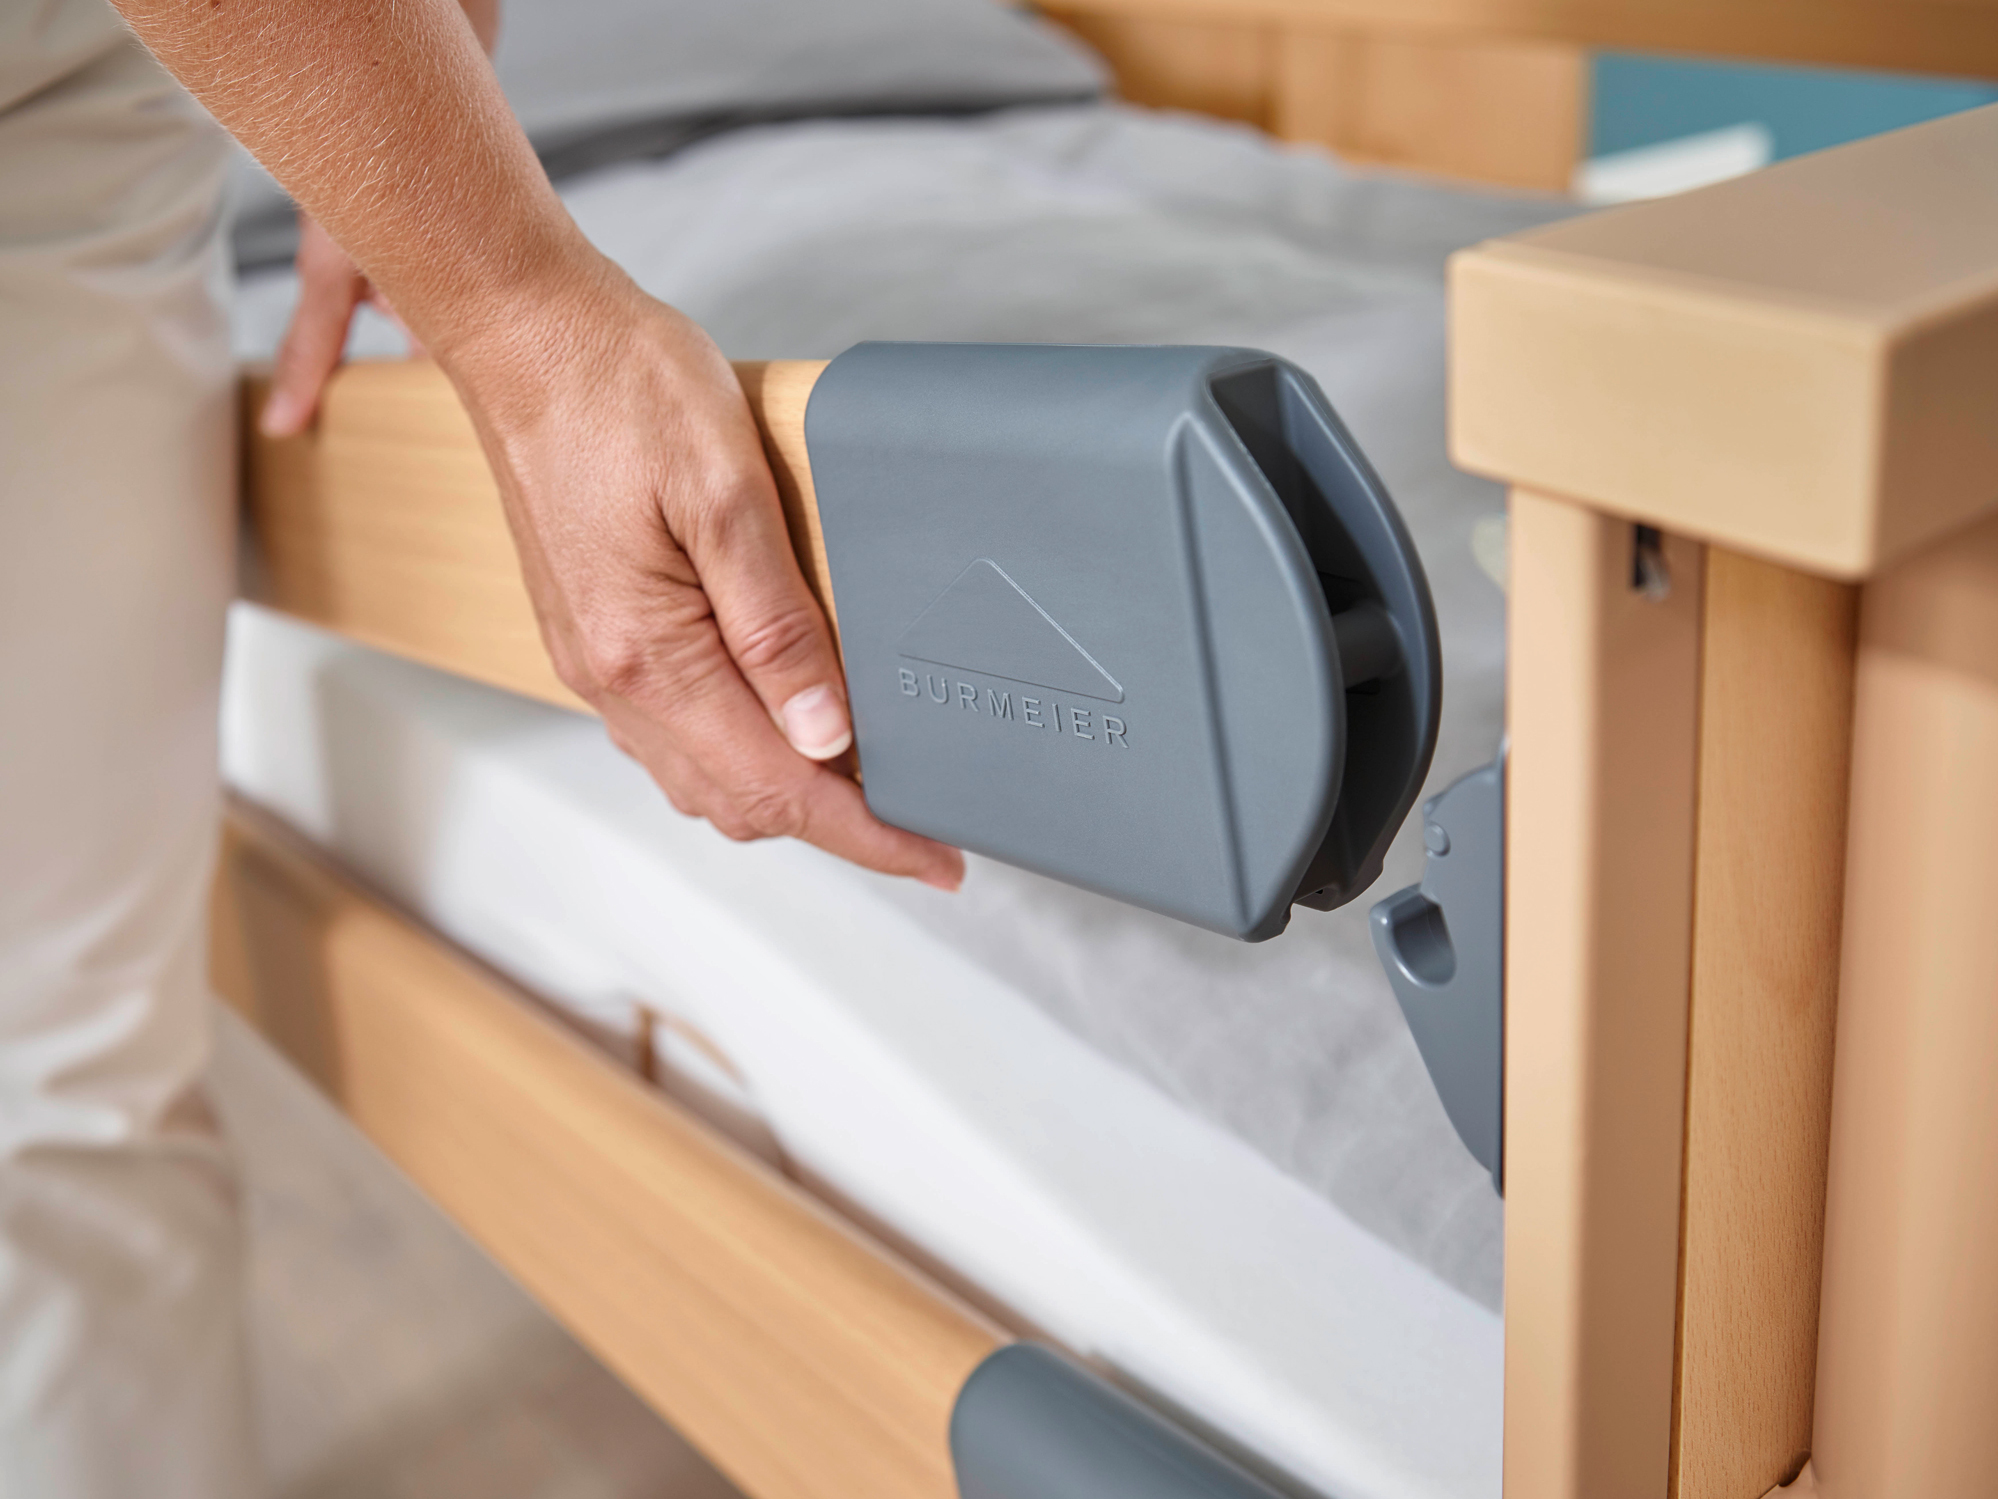 Easy Click system in the Dali care bed range